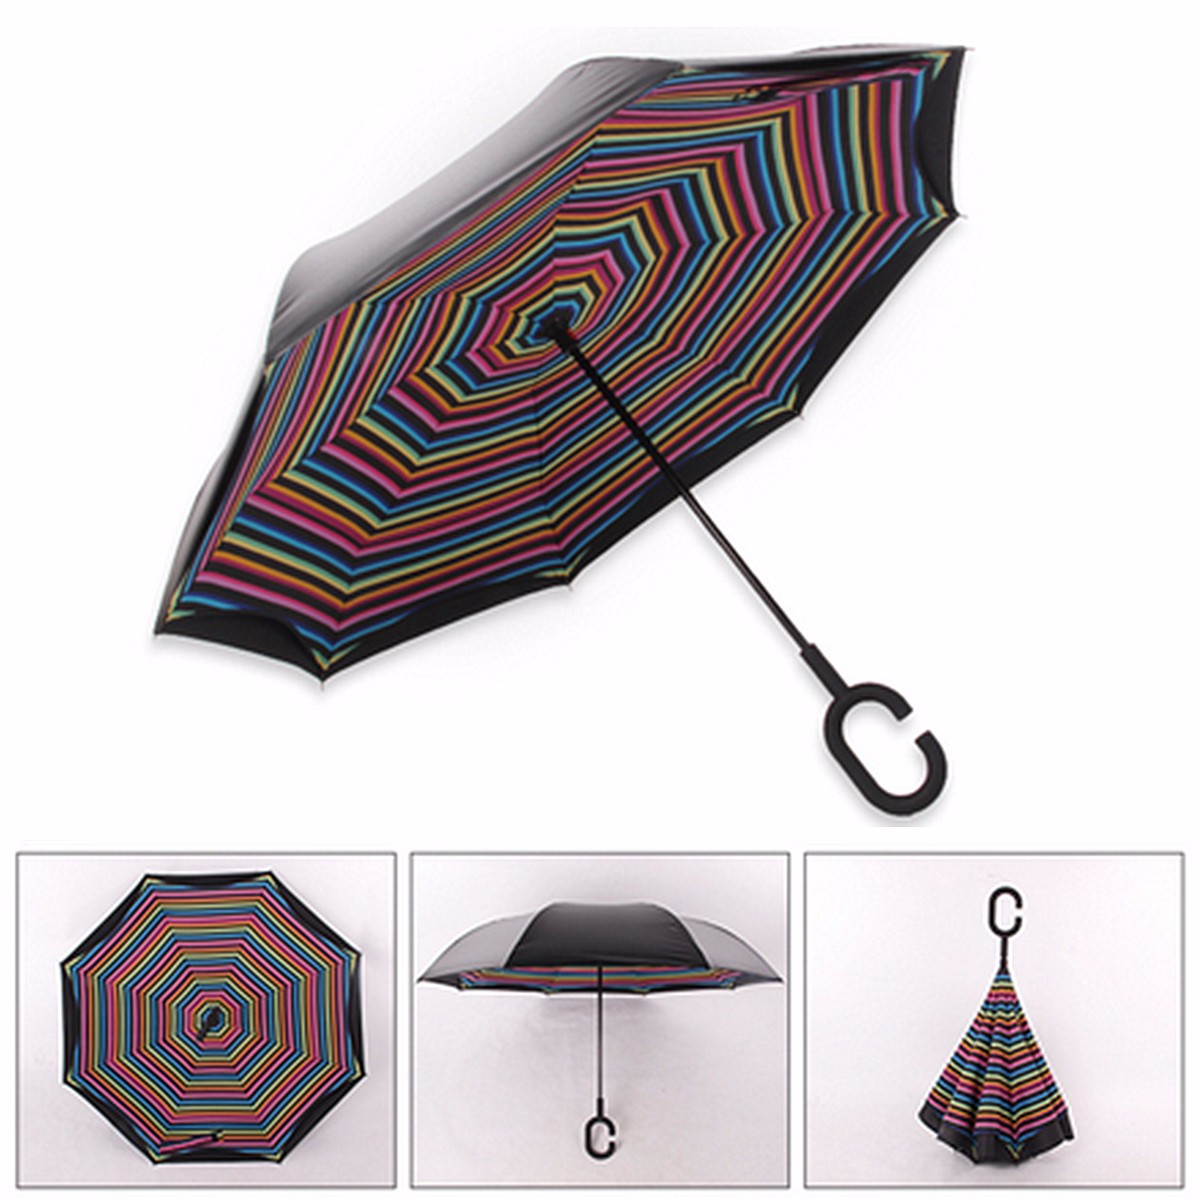 Online color invert picture - Umbrella With C Shaped Hands Double Layer Special Design Inverted Reverse Rainy Sunny Long Handle